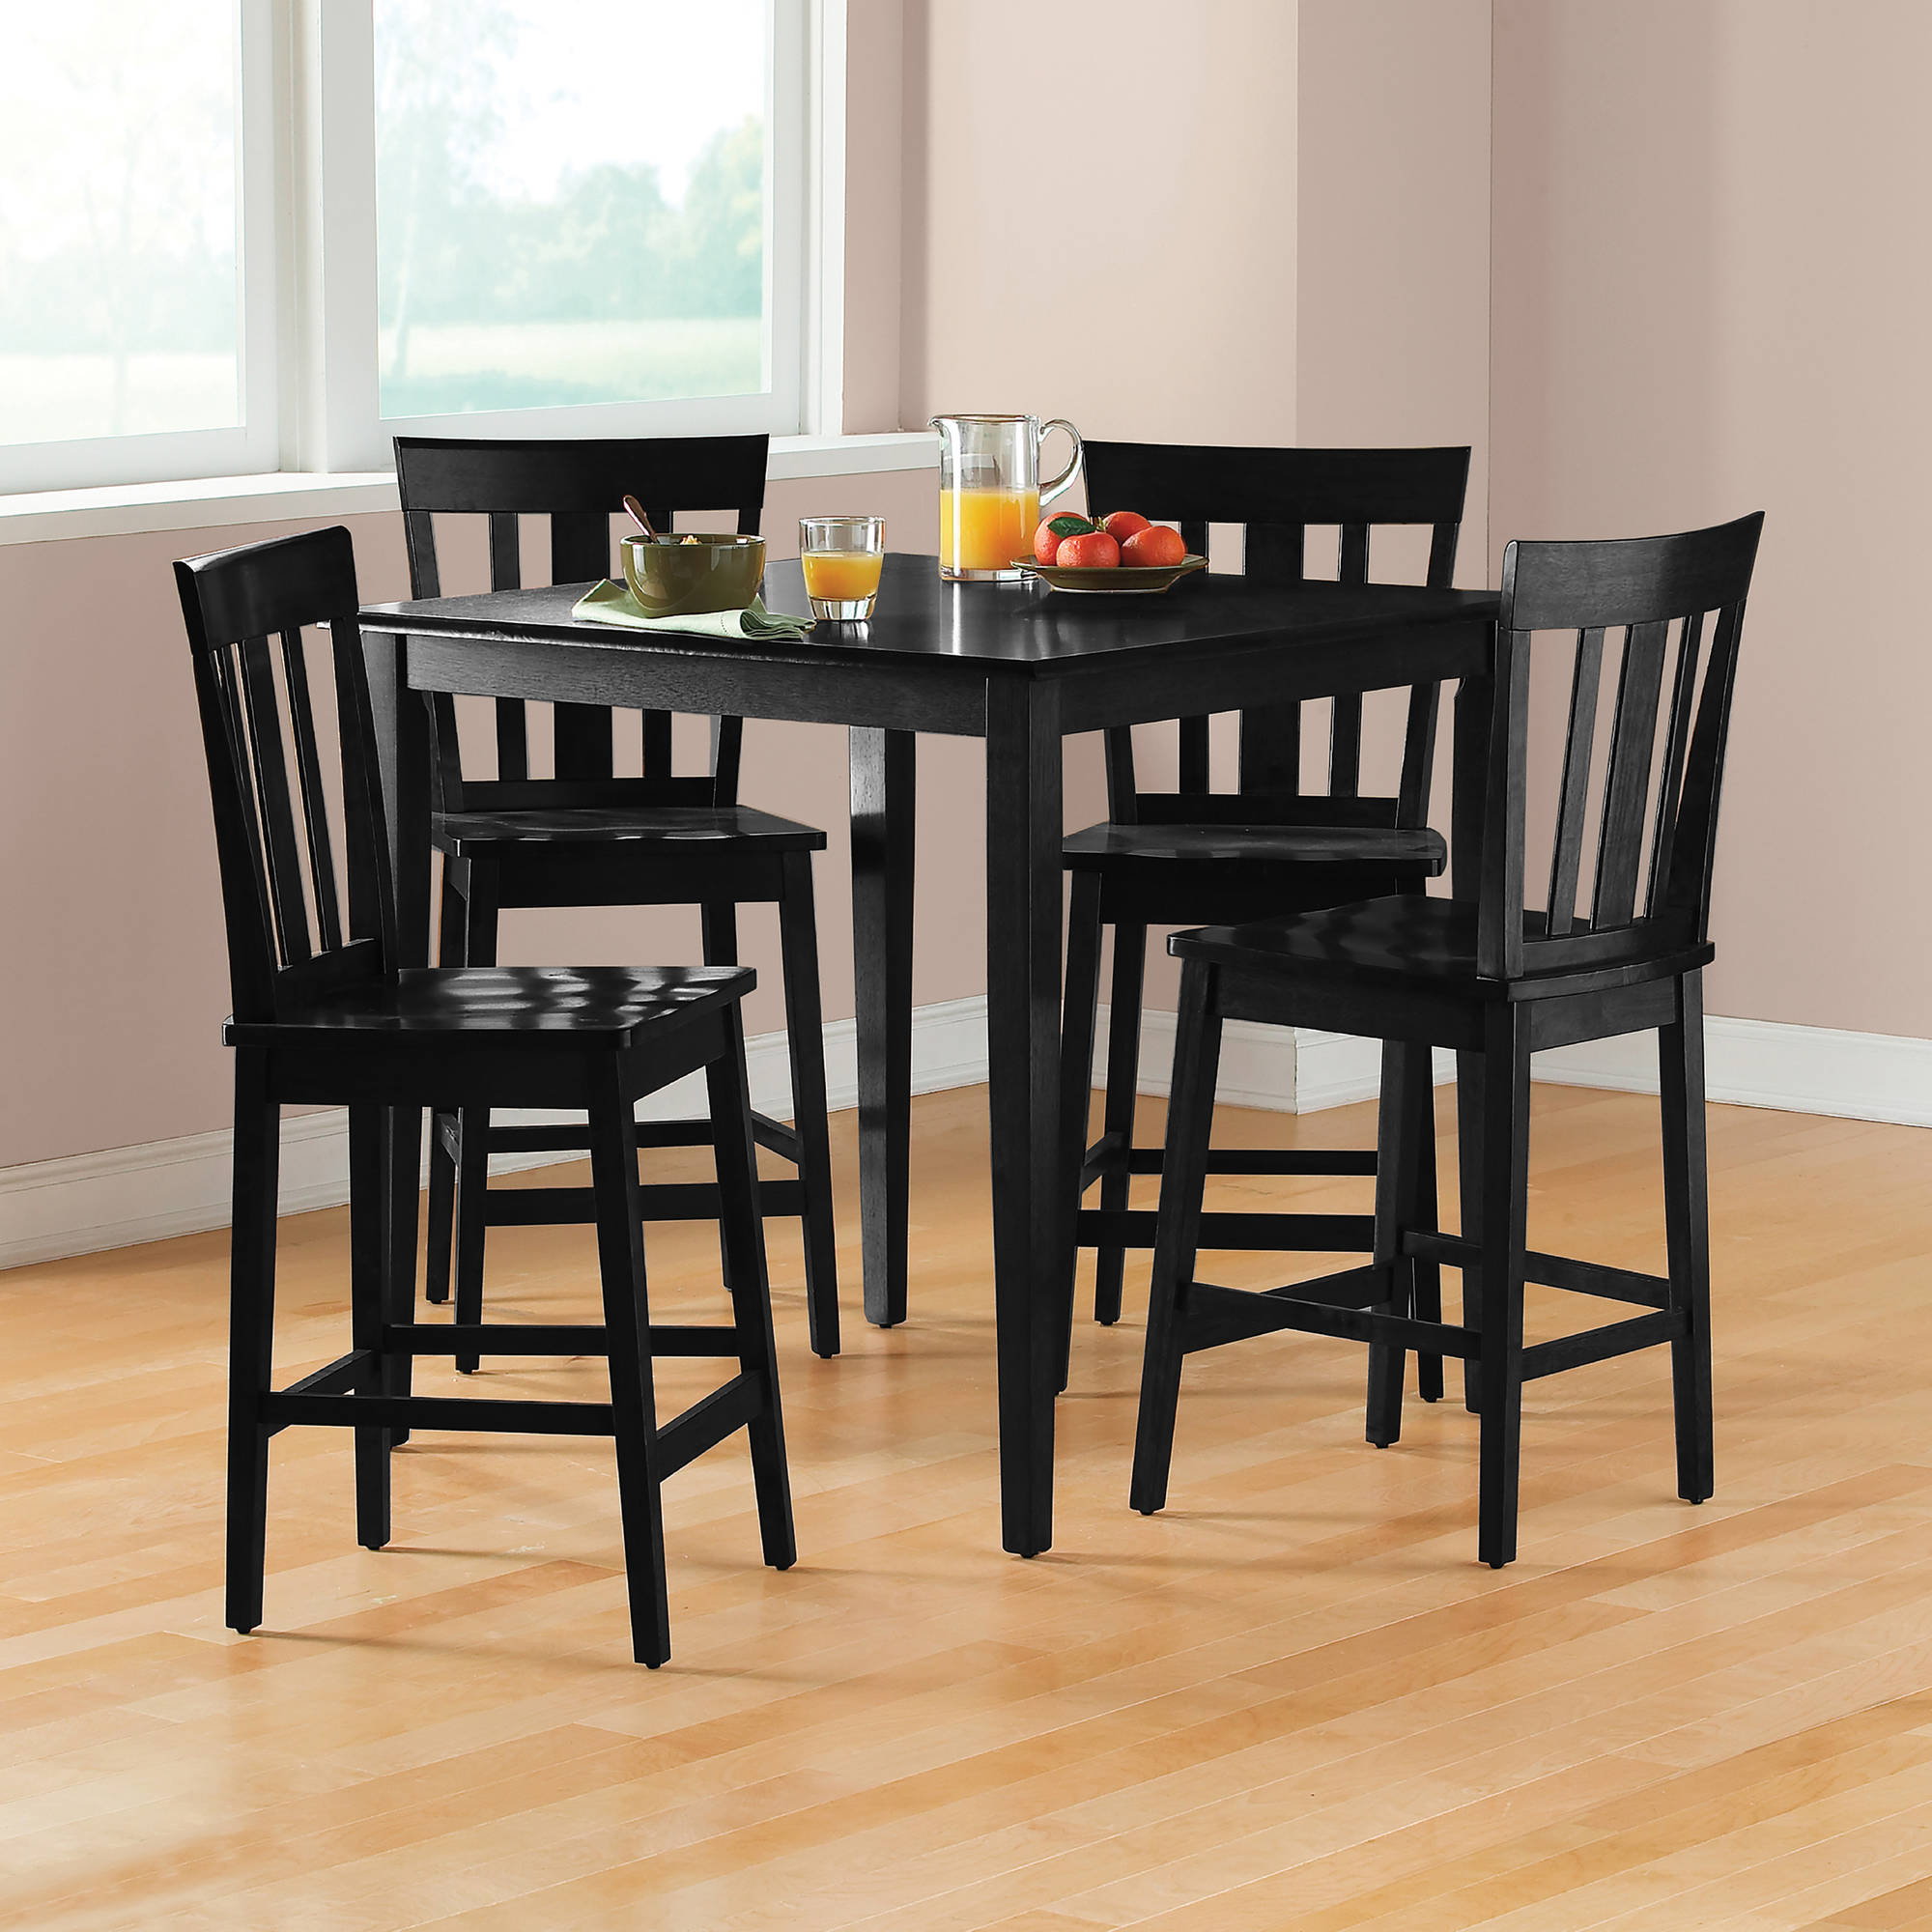 Pub table set counter height dining furniture 5 piece kitchen chairs black